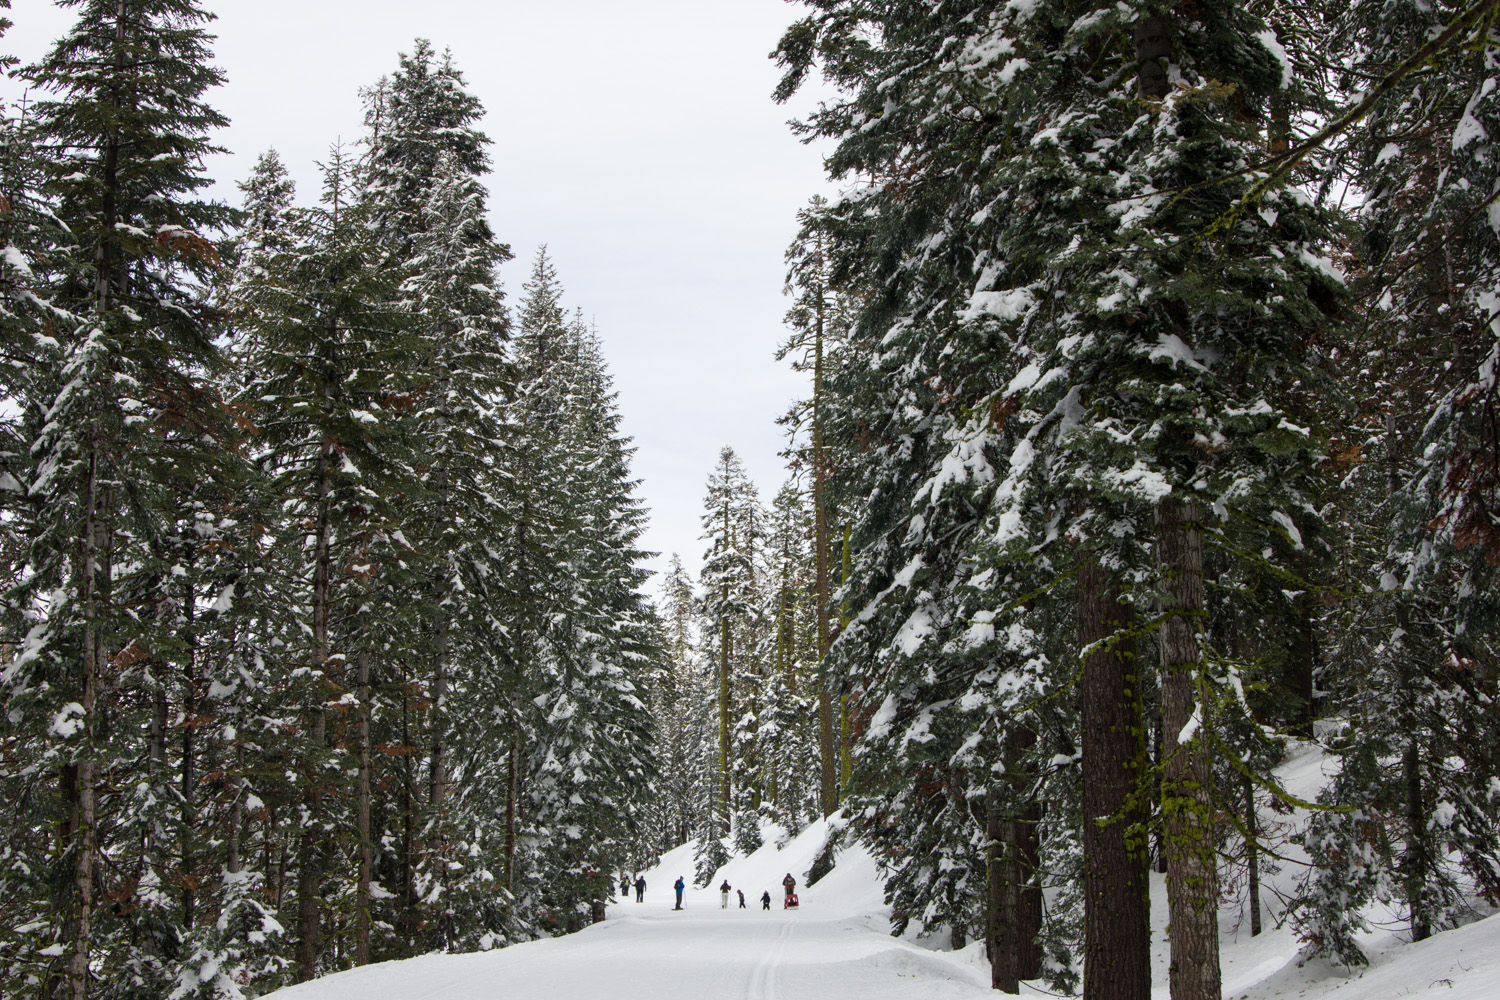 People snowshoeing on a snowy trail in Yosemite surrounded by snowy, tall pine trees